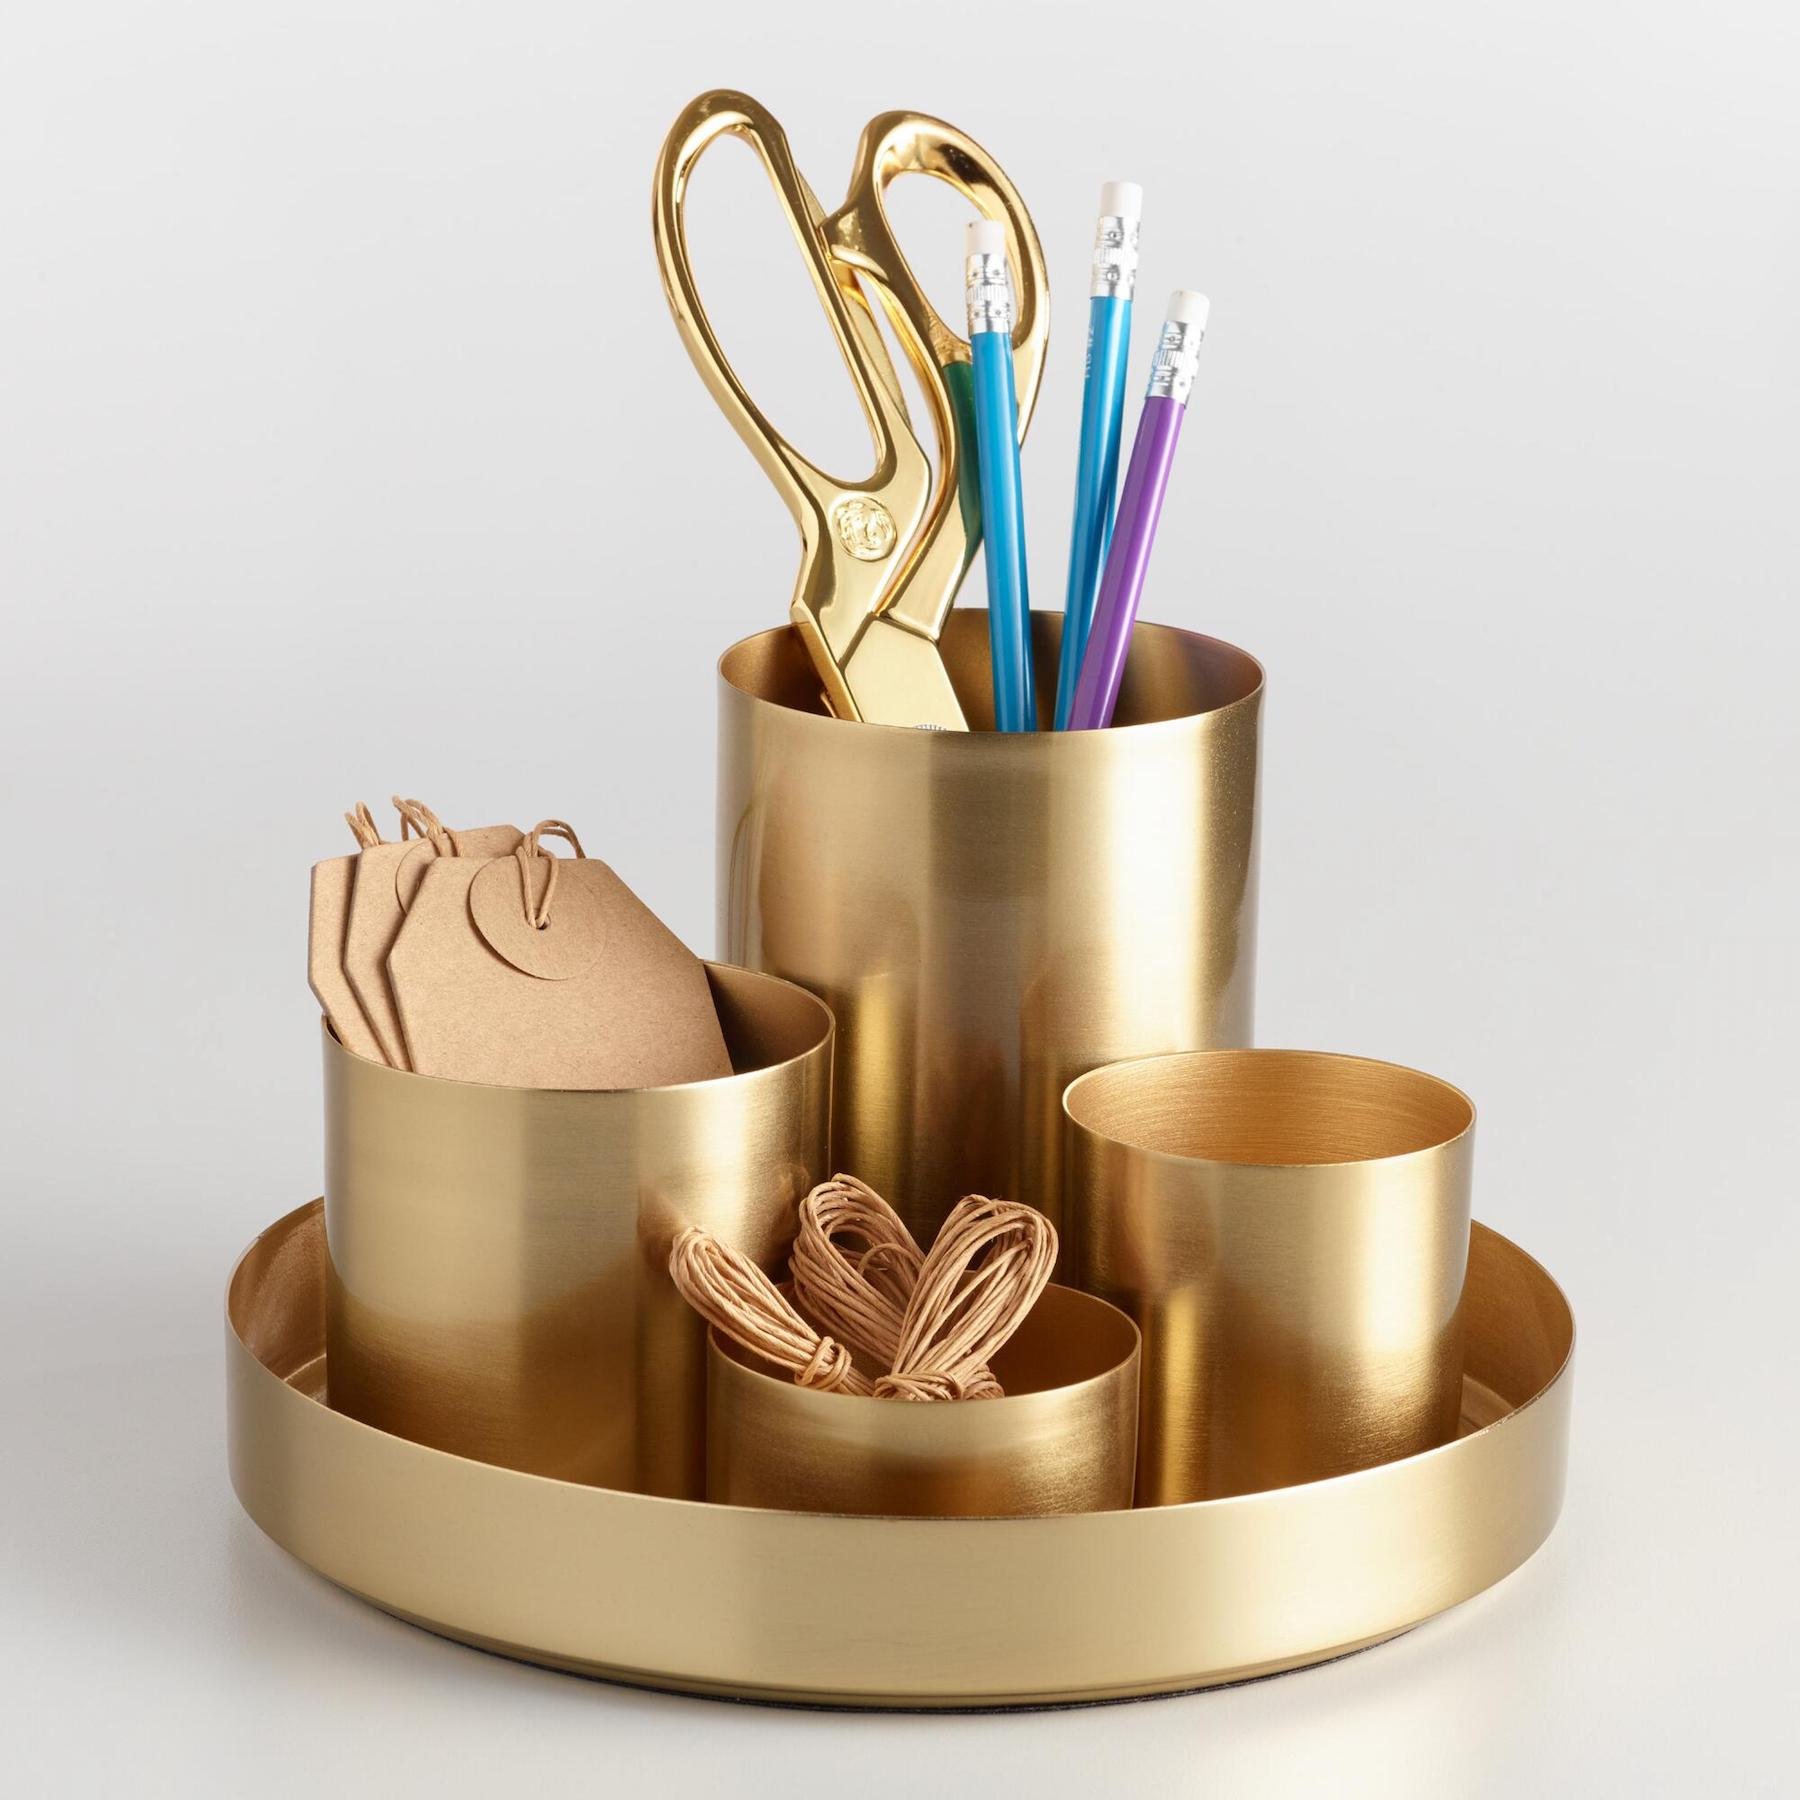 Best Desk Organizer Set for a Glam Desk